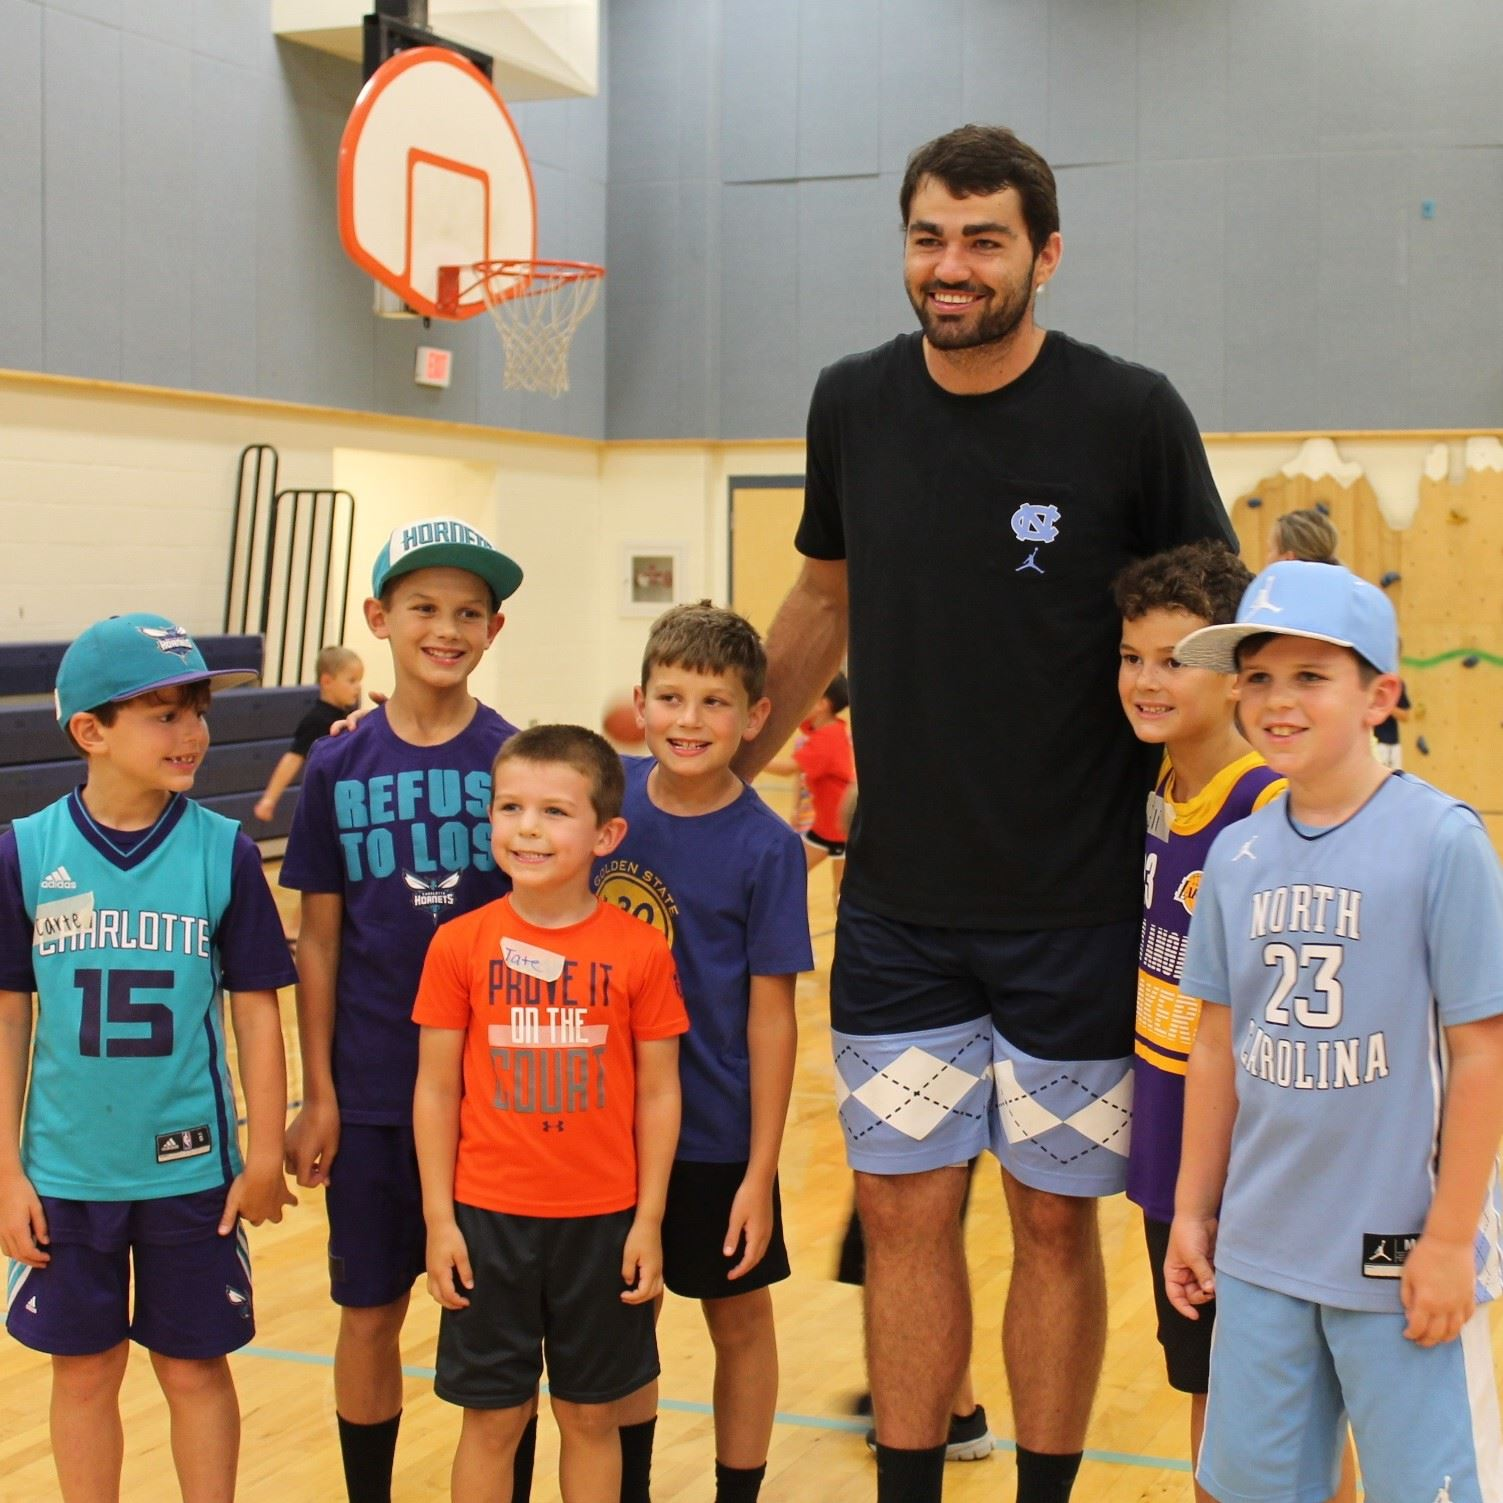 Boys posing with Luke Maye at basketball court